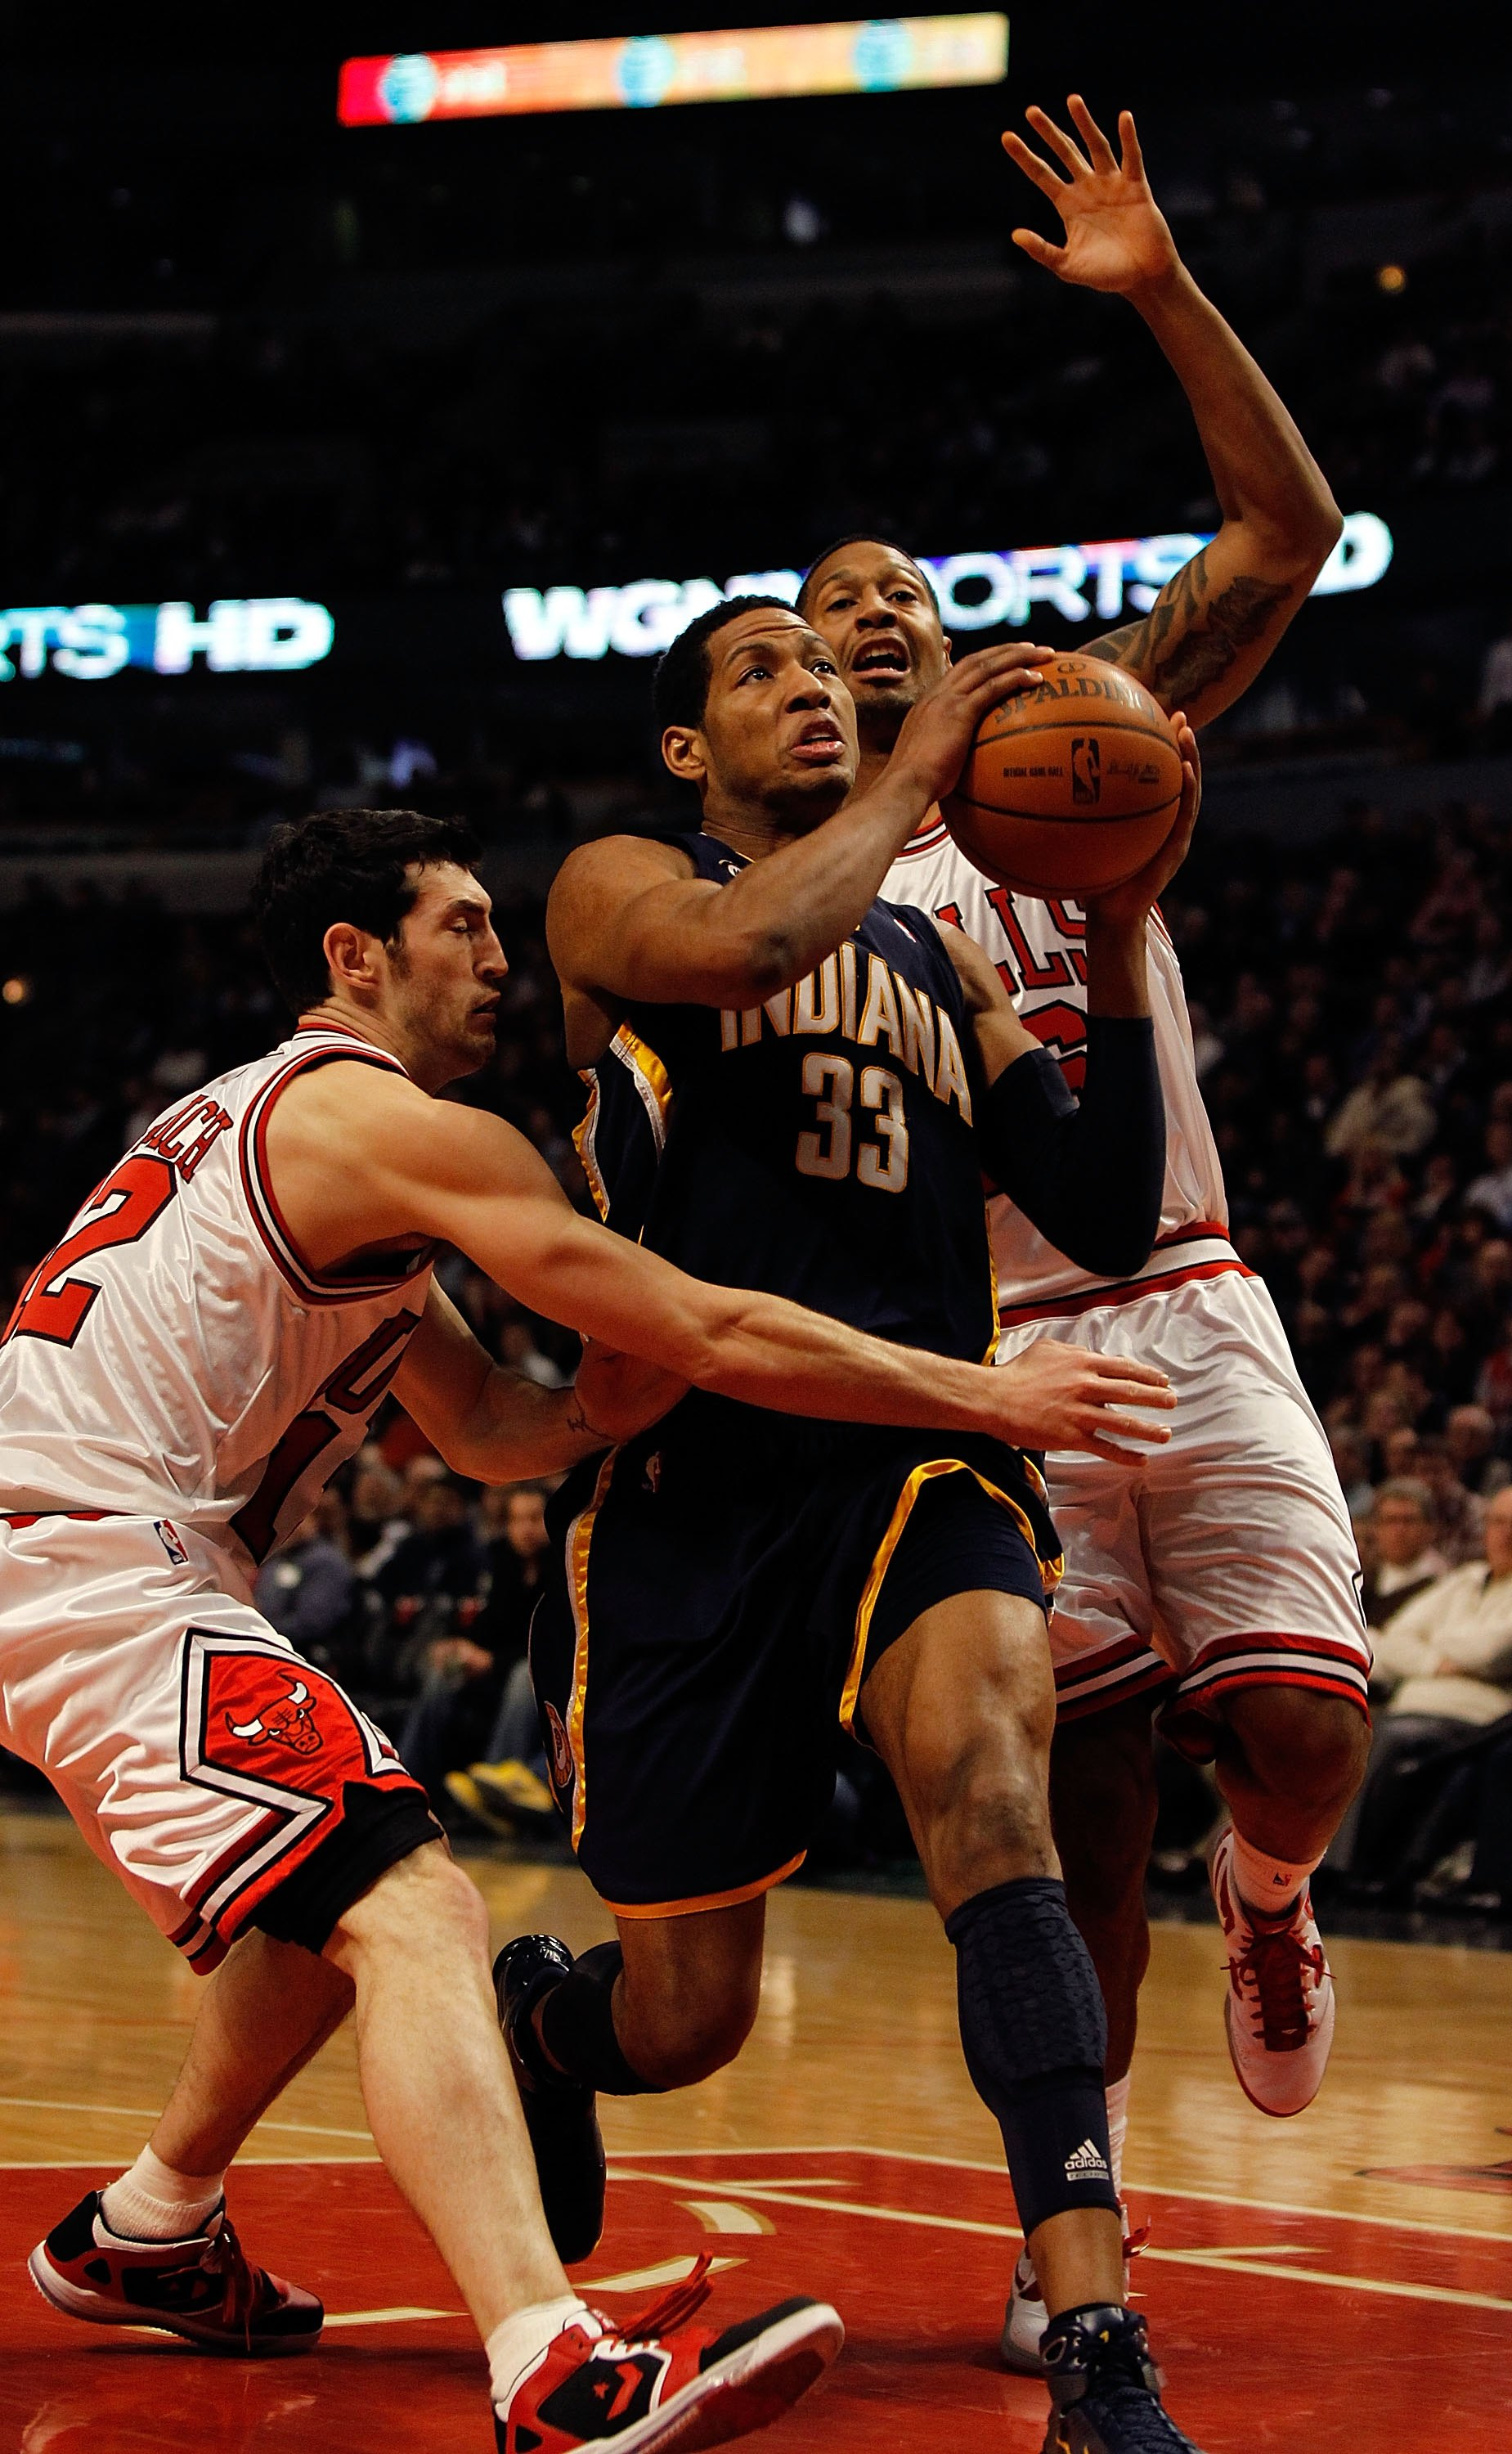 CHICAGO - FEBRUARY 24: Danny Granger #33 of the Indiana Pacers drives to the basket between Kirk Hinrich #12 and James Johnson #16 of the Chicago Bulls at the United Center on February 24, 2010 in Chicago, Illinois. The Bulls defeated the Pacers 120-110.